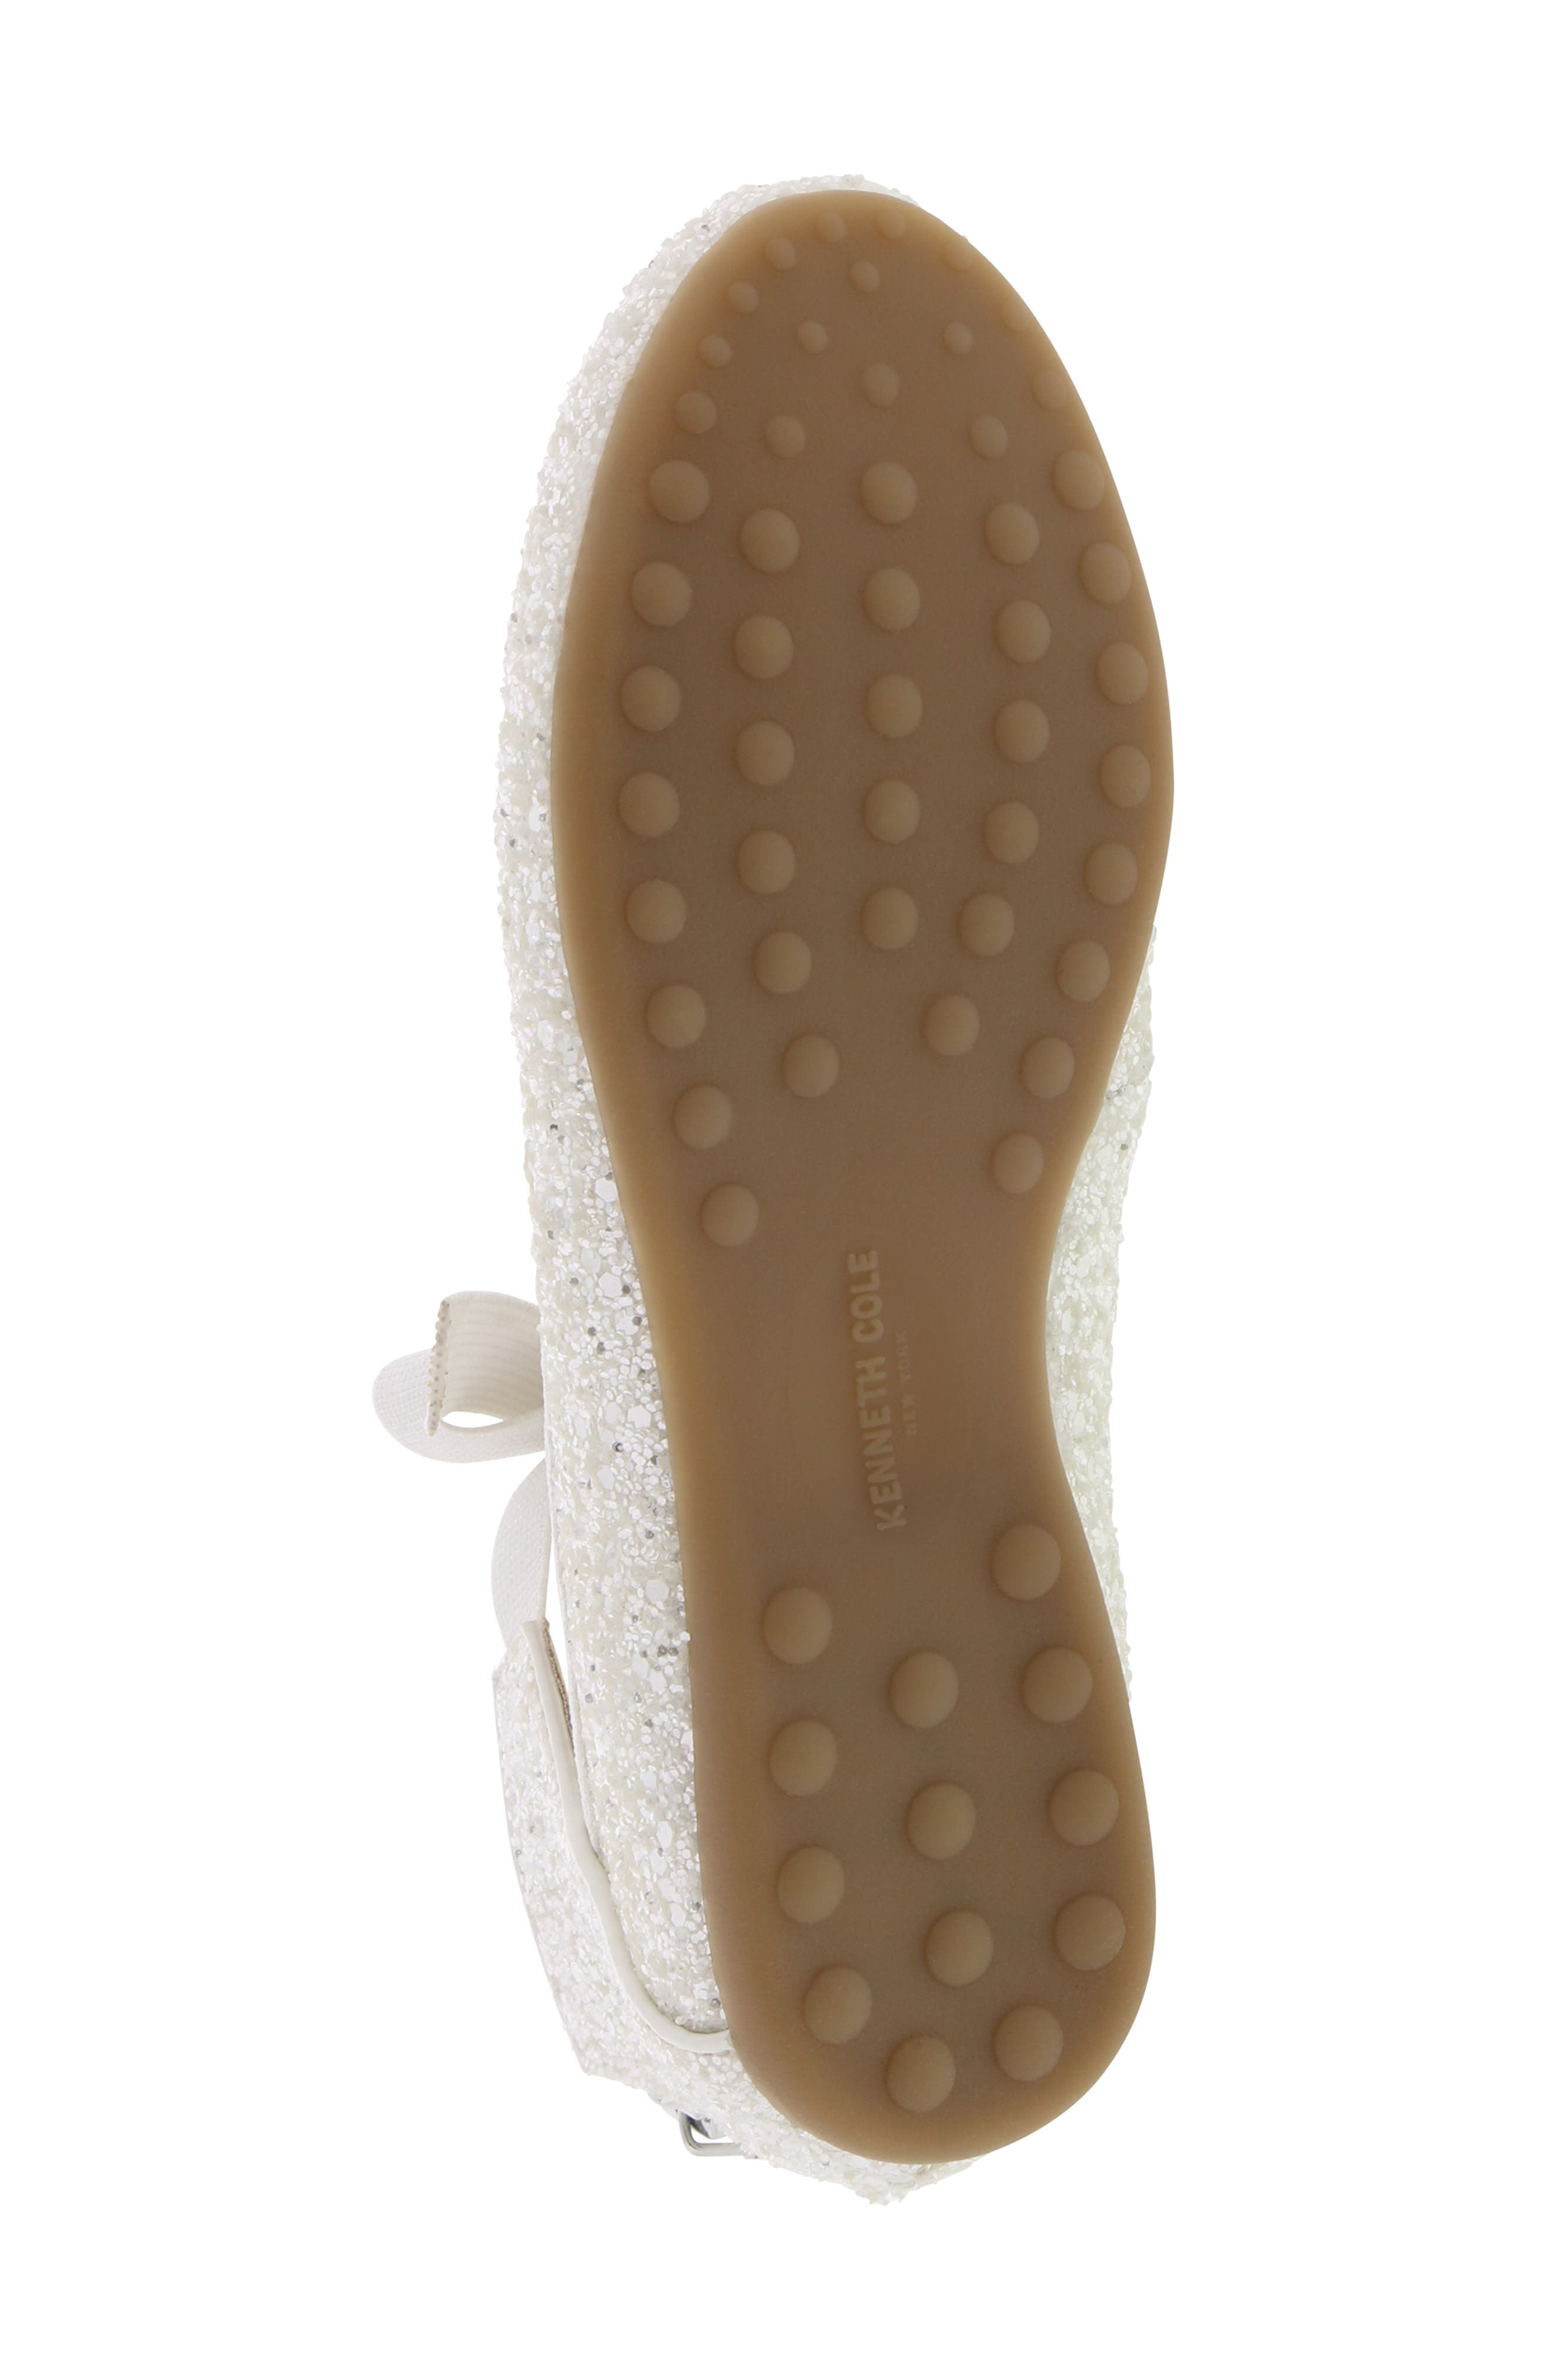 KENNETH COLE NEW YORK, Rose Bow Ballet Flat, Alternate thumbnail 6, color, WHITE SUGAR GLITTER